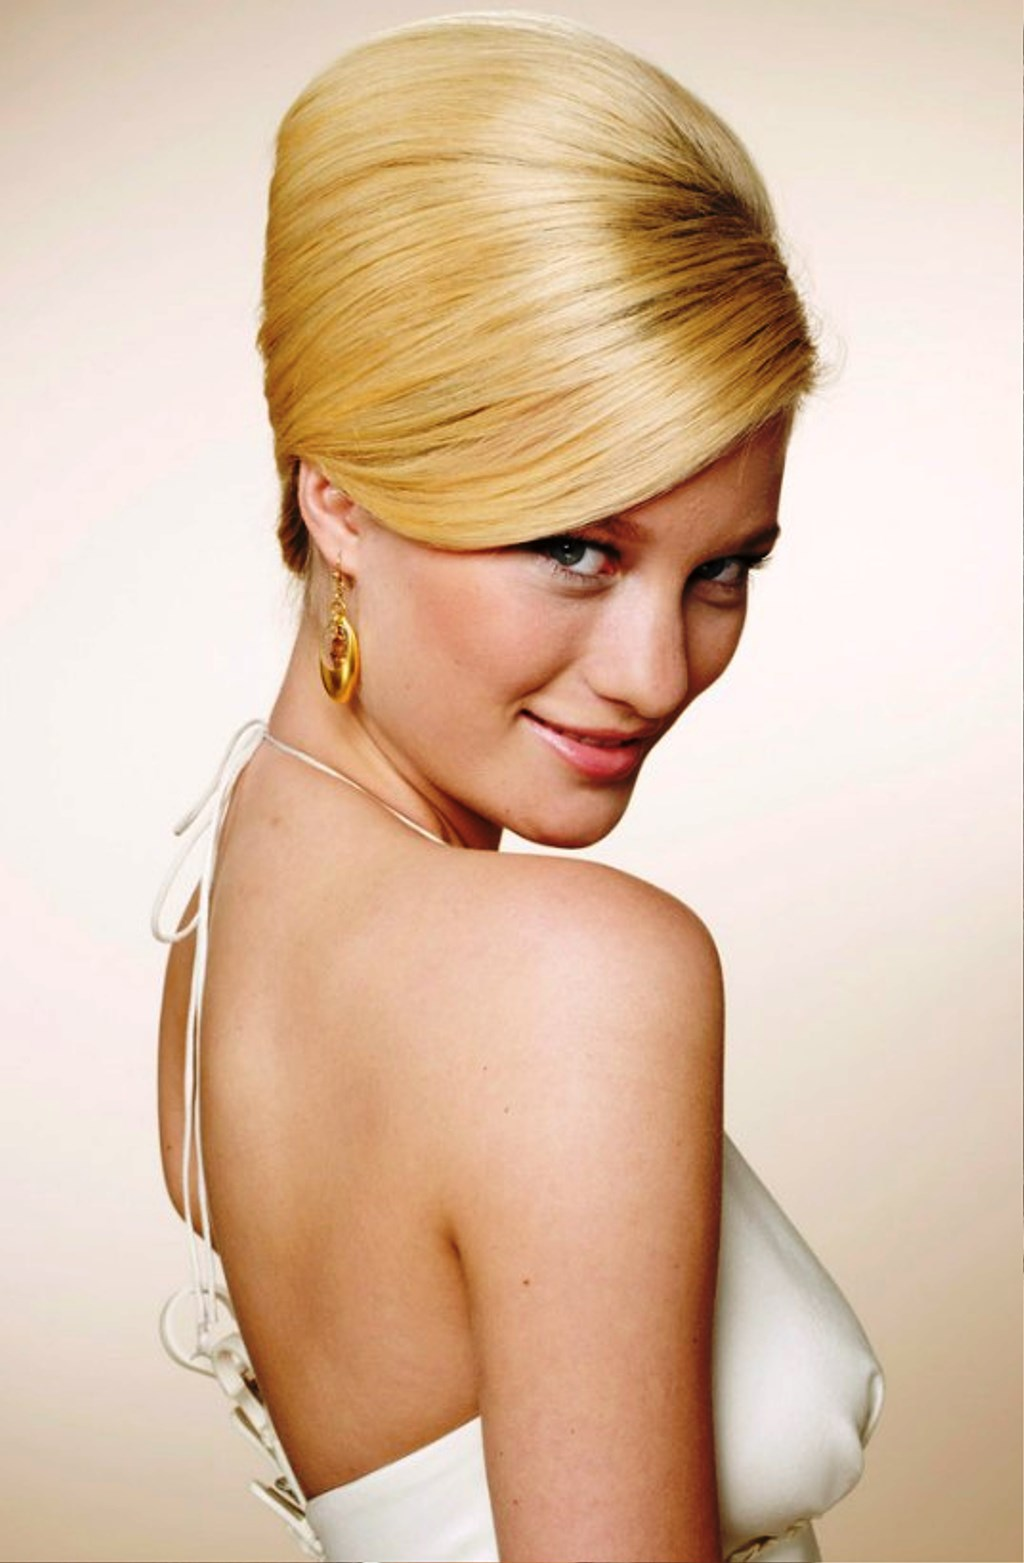 How To Create a 1960s Mad Men Hair Style Step by Step